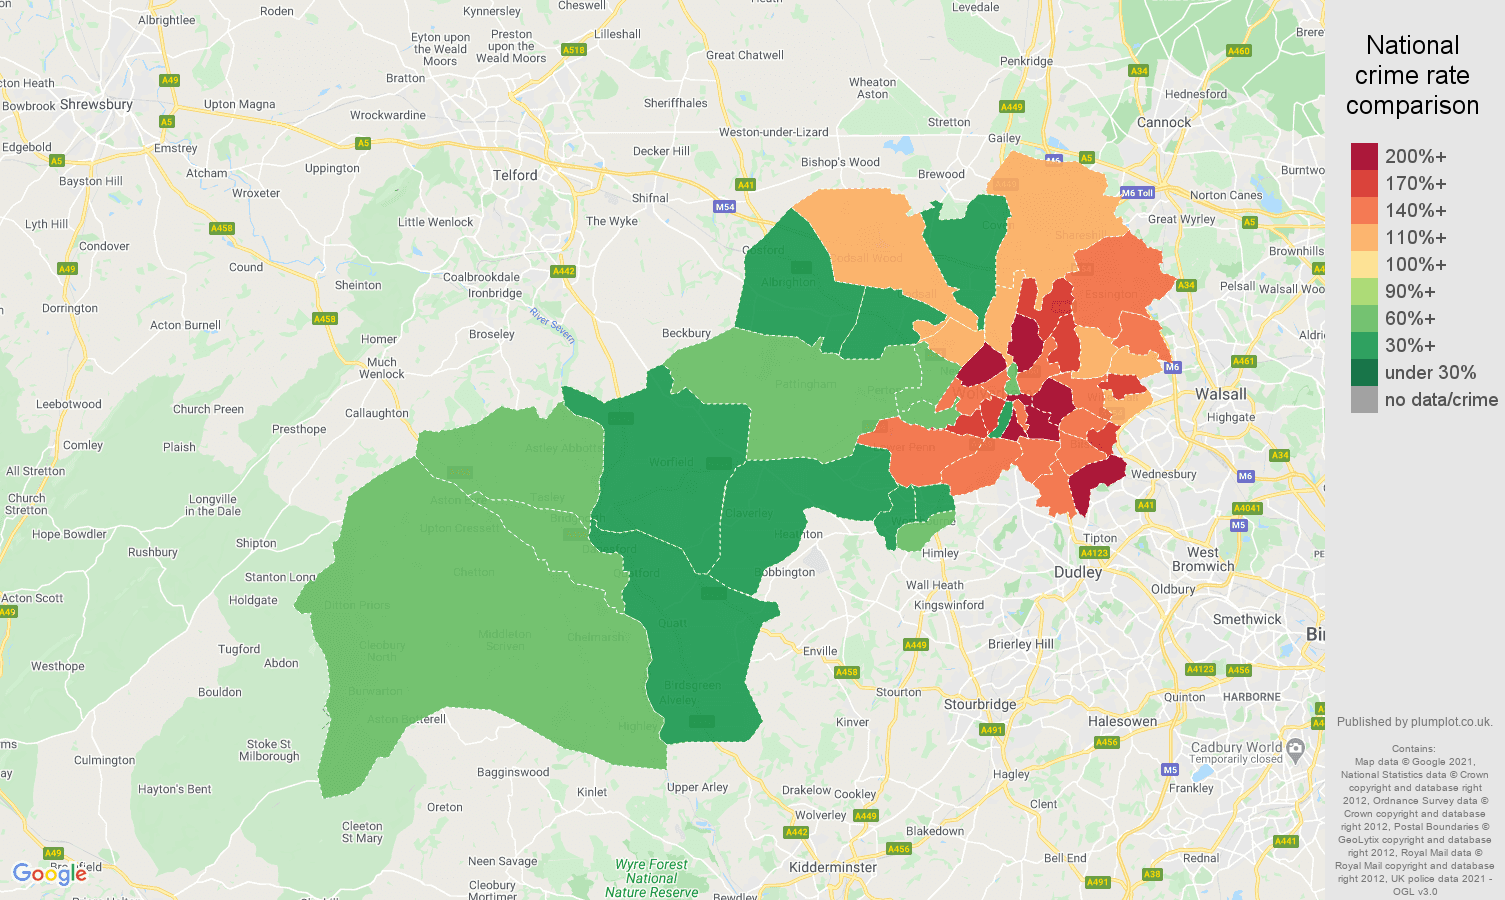 Wolverhampton violent crime rate comparison map